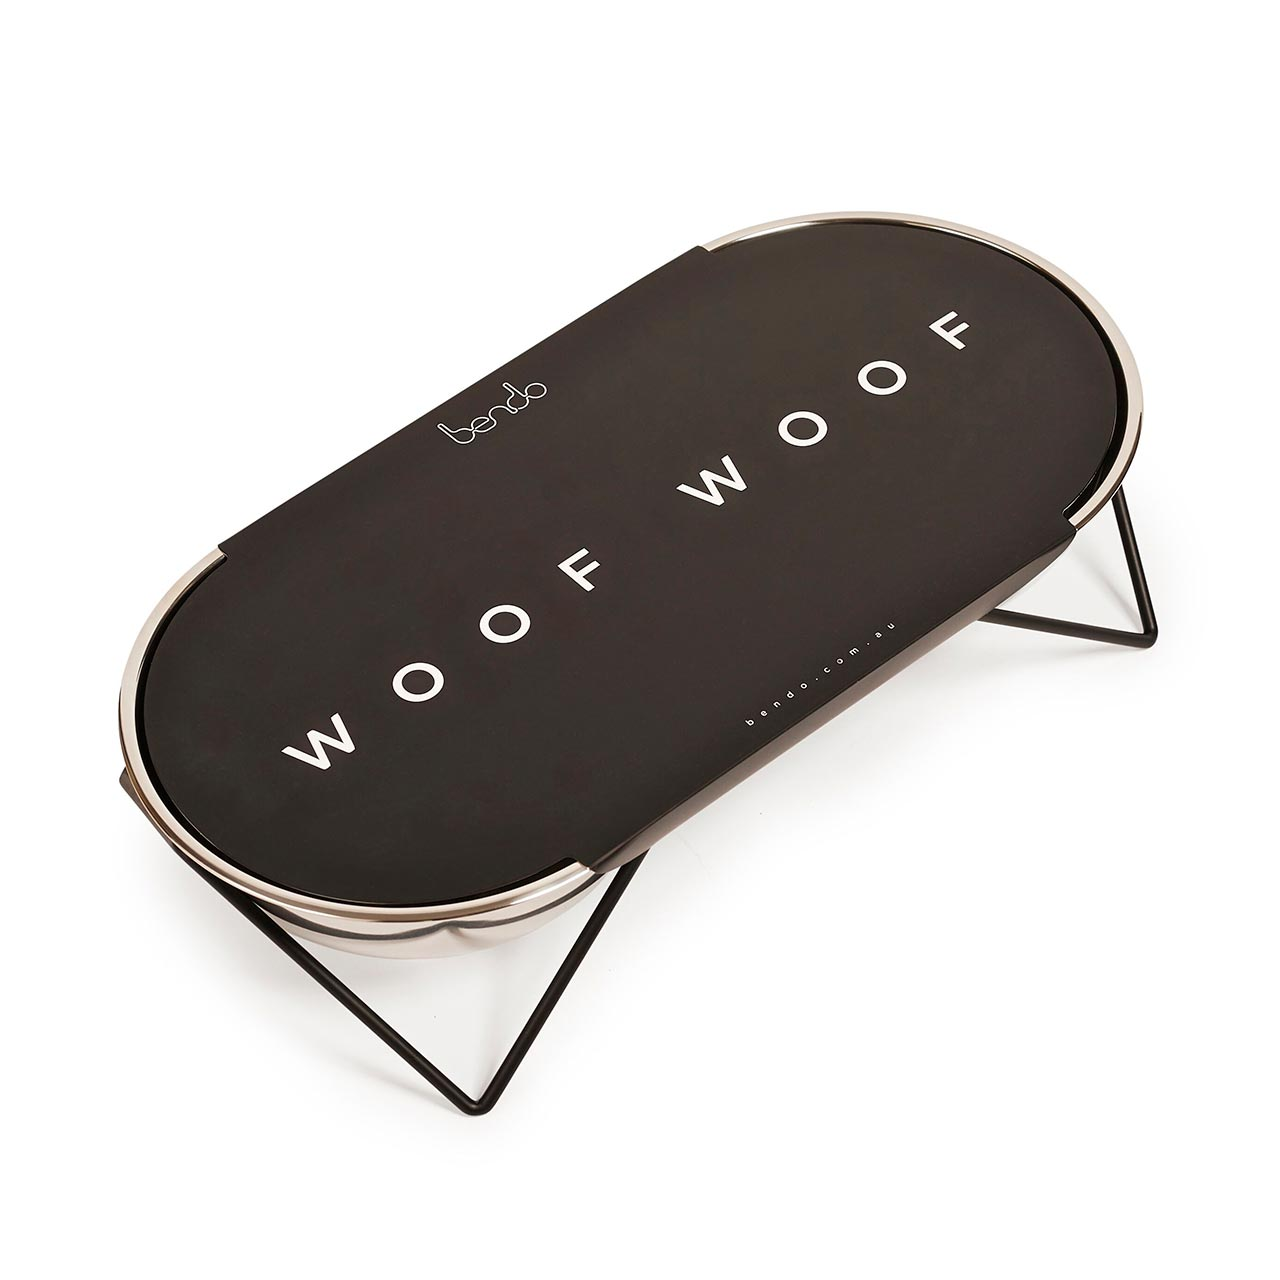 Bendo Luxe WOOF WOOF double dog bowl black stand | The Design Gift Shop